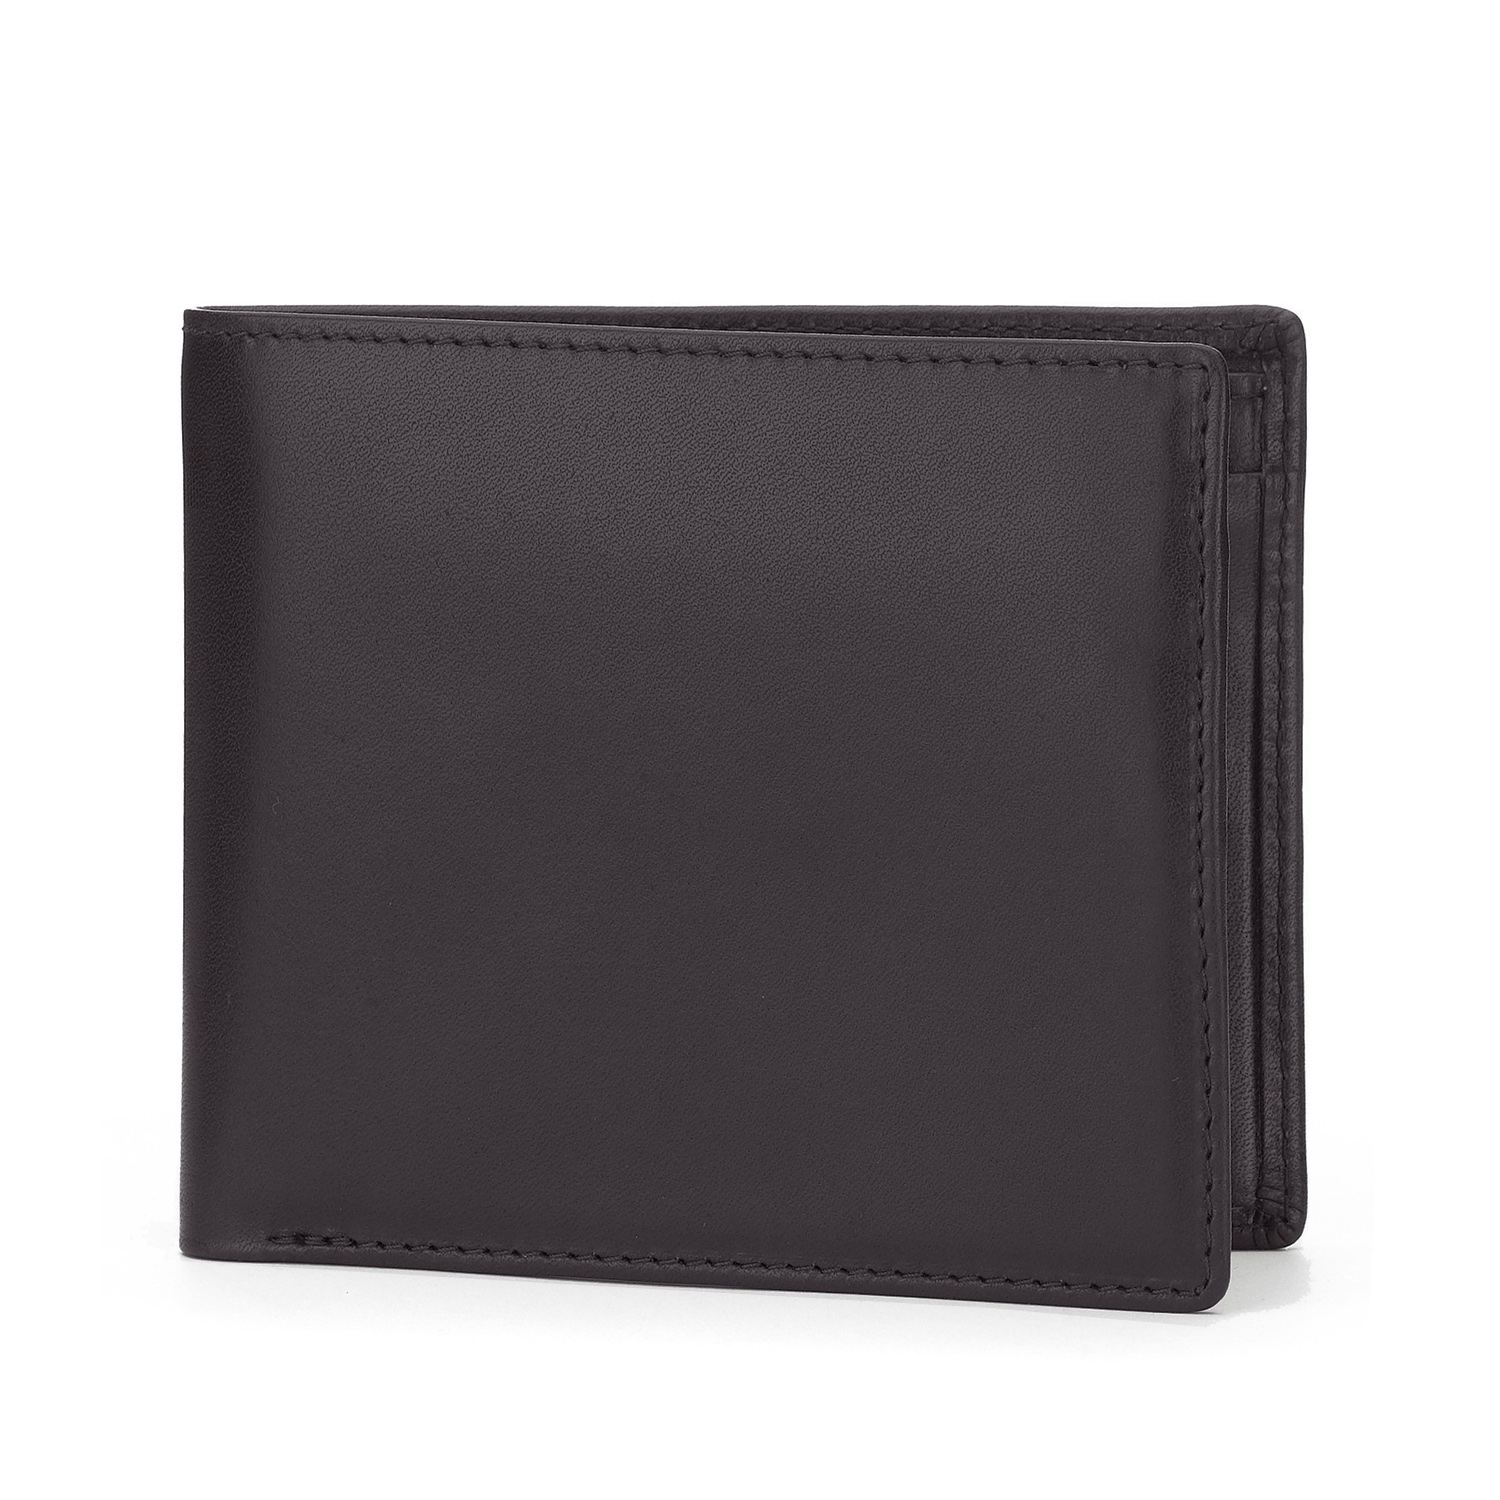 Tusting Black Leather Wallet